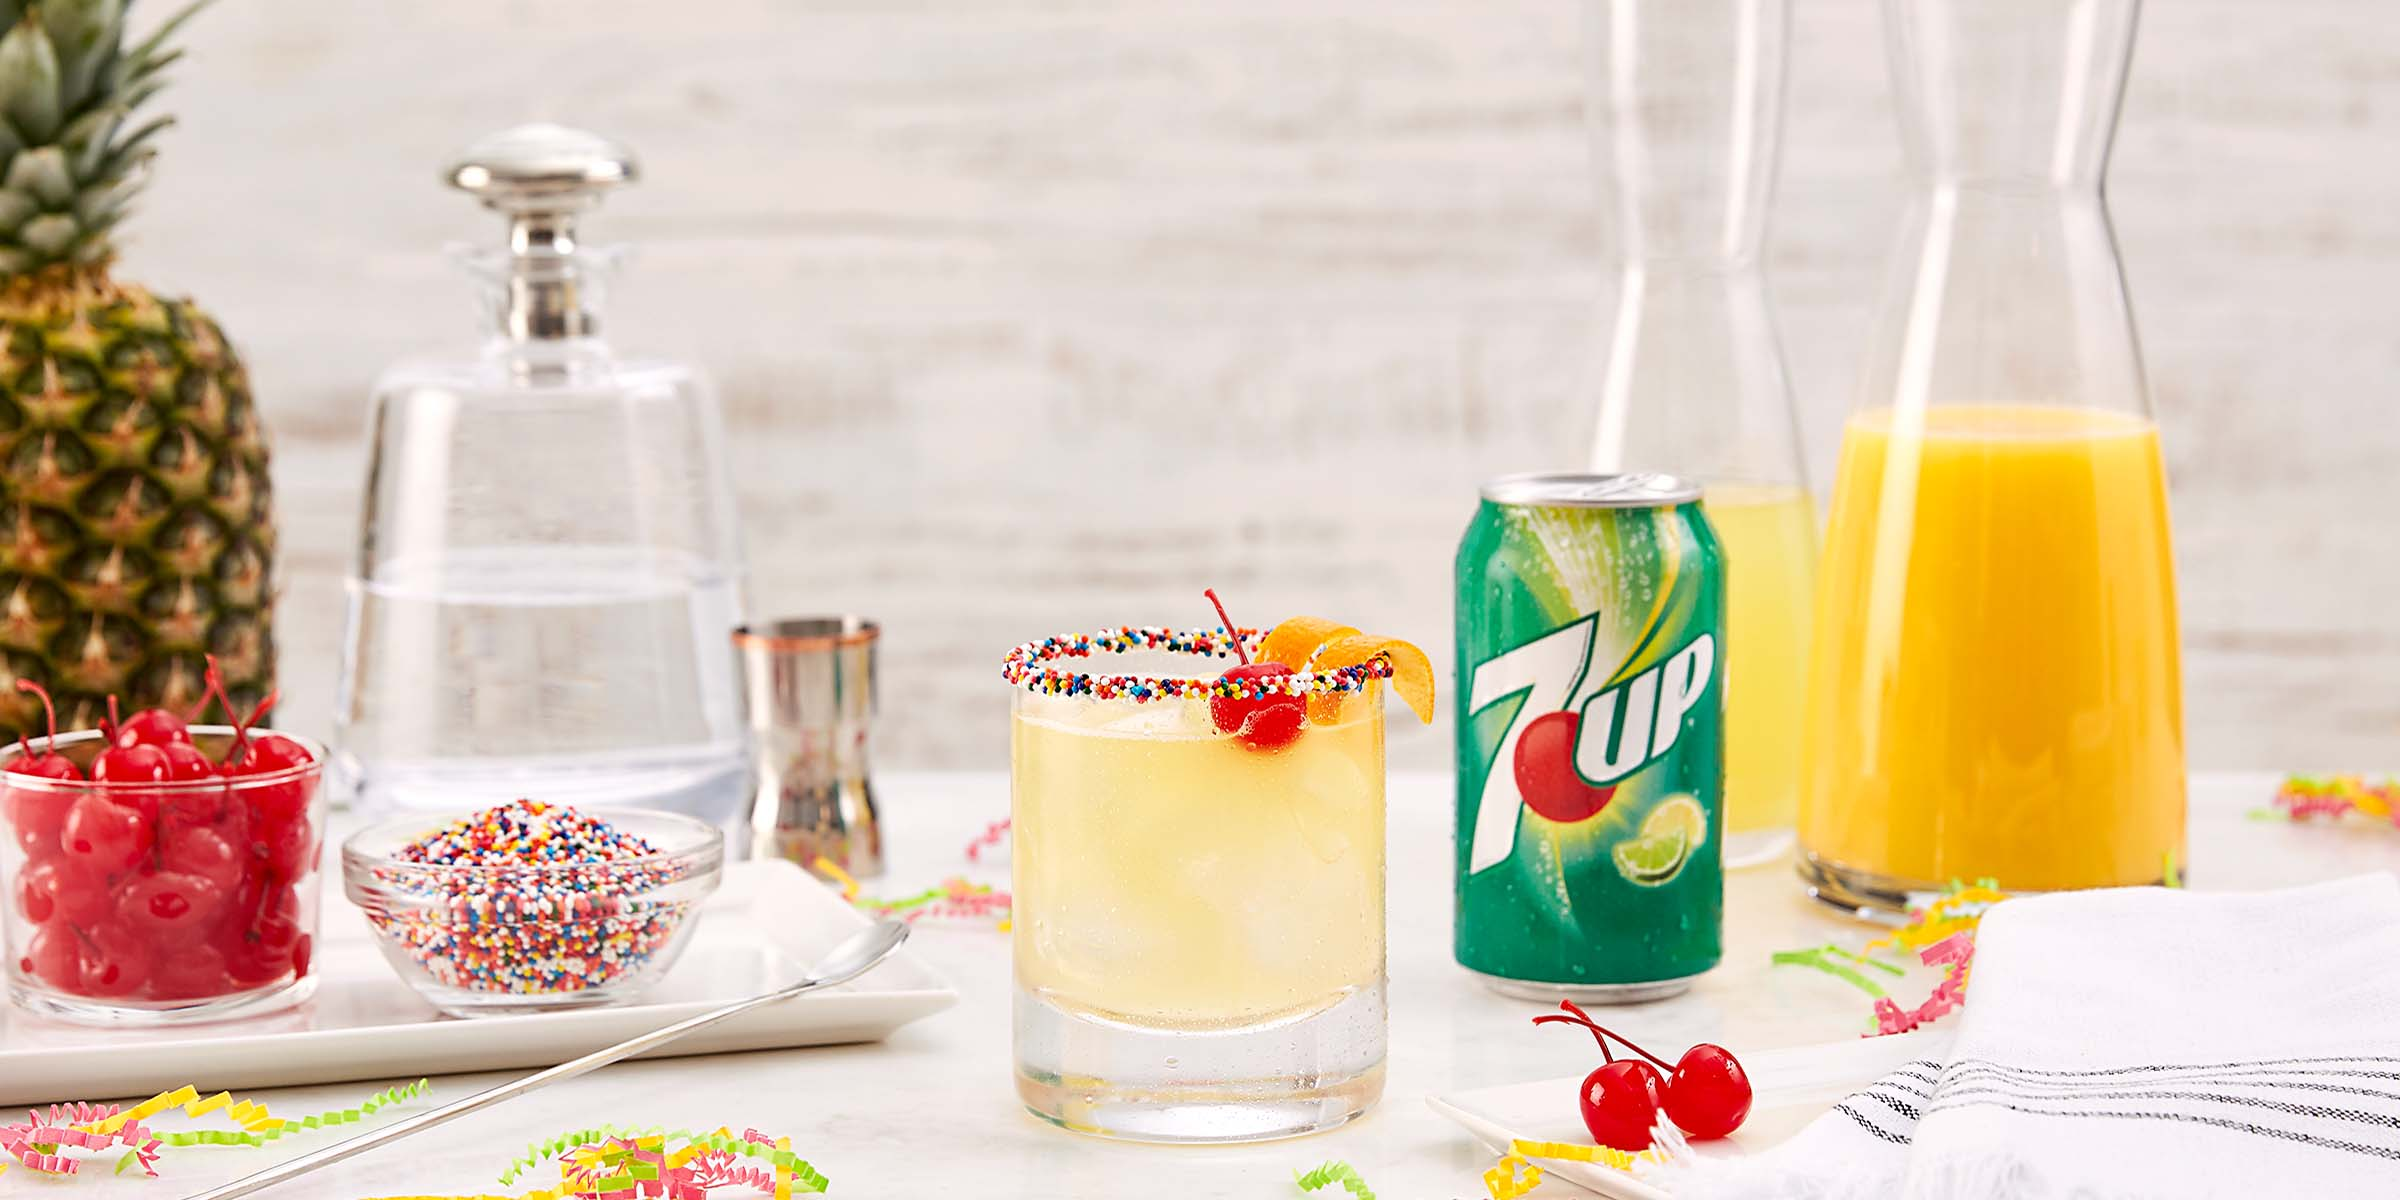 7up Side Down Cake Recipe 7up 174